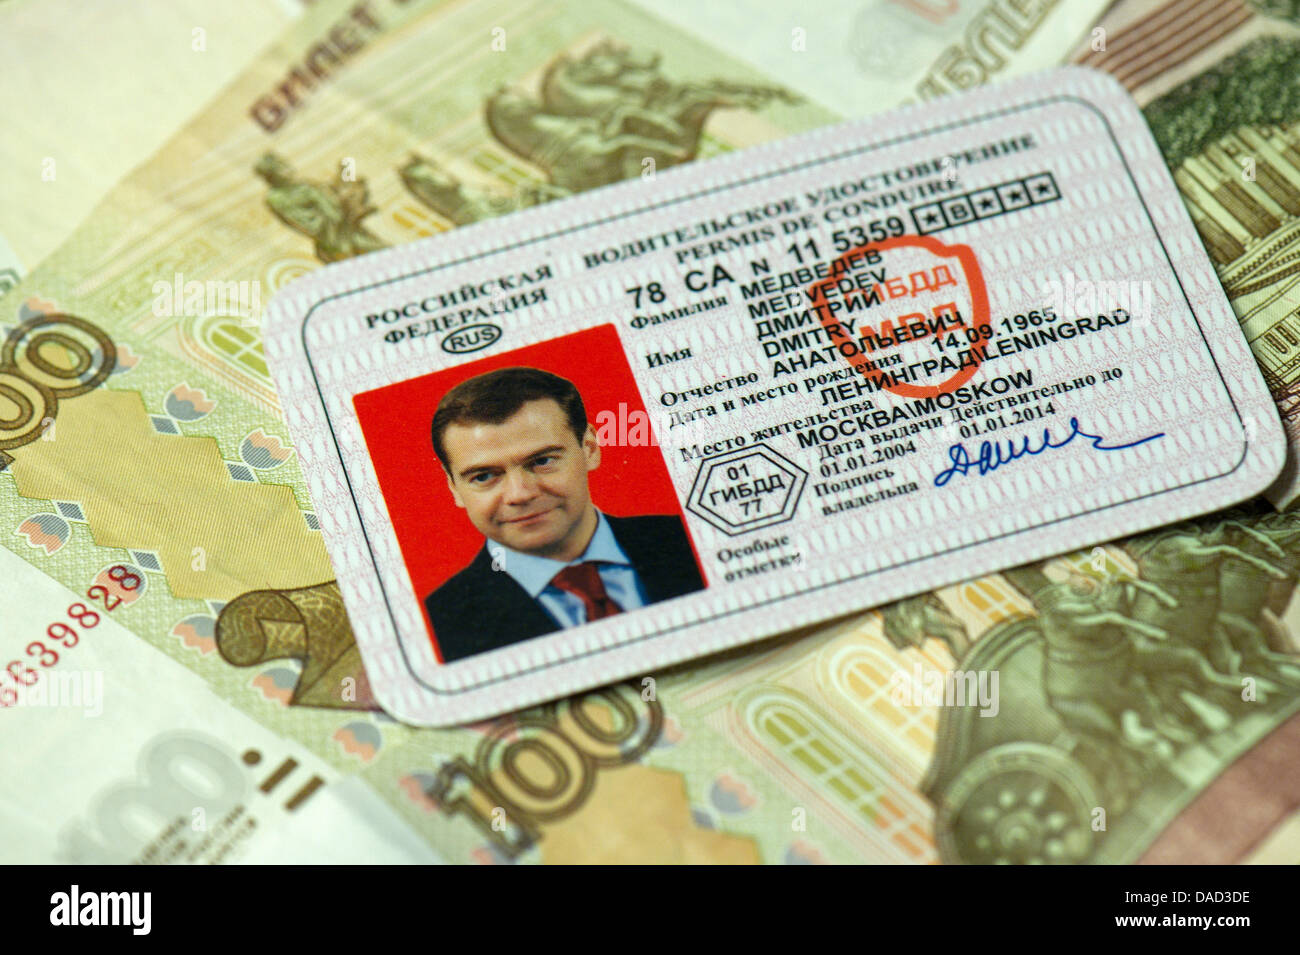 ILLUSTRATION - A faked drivers license of the Russian President Dmitry Medvedev lies on Russian money after being - Stock Image